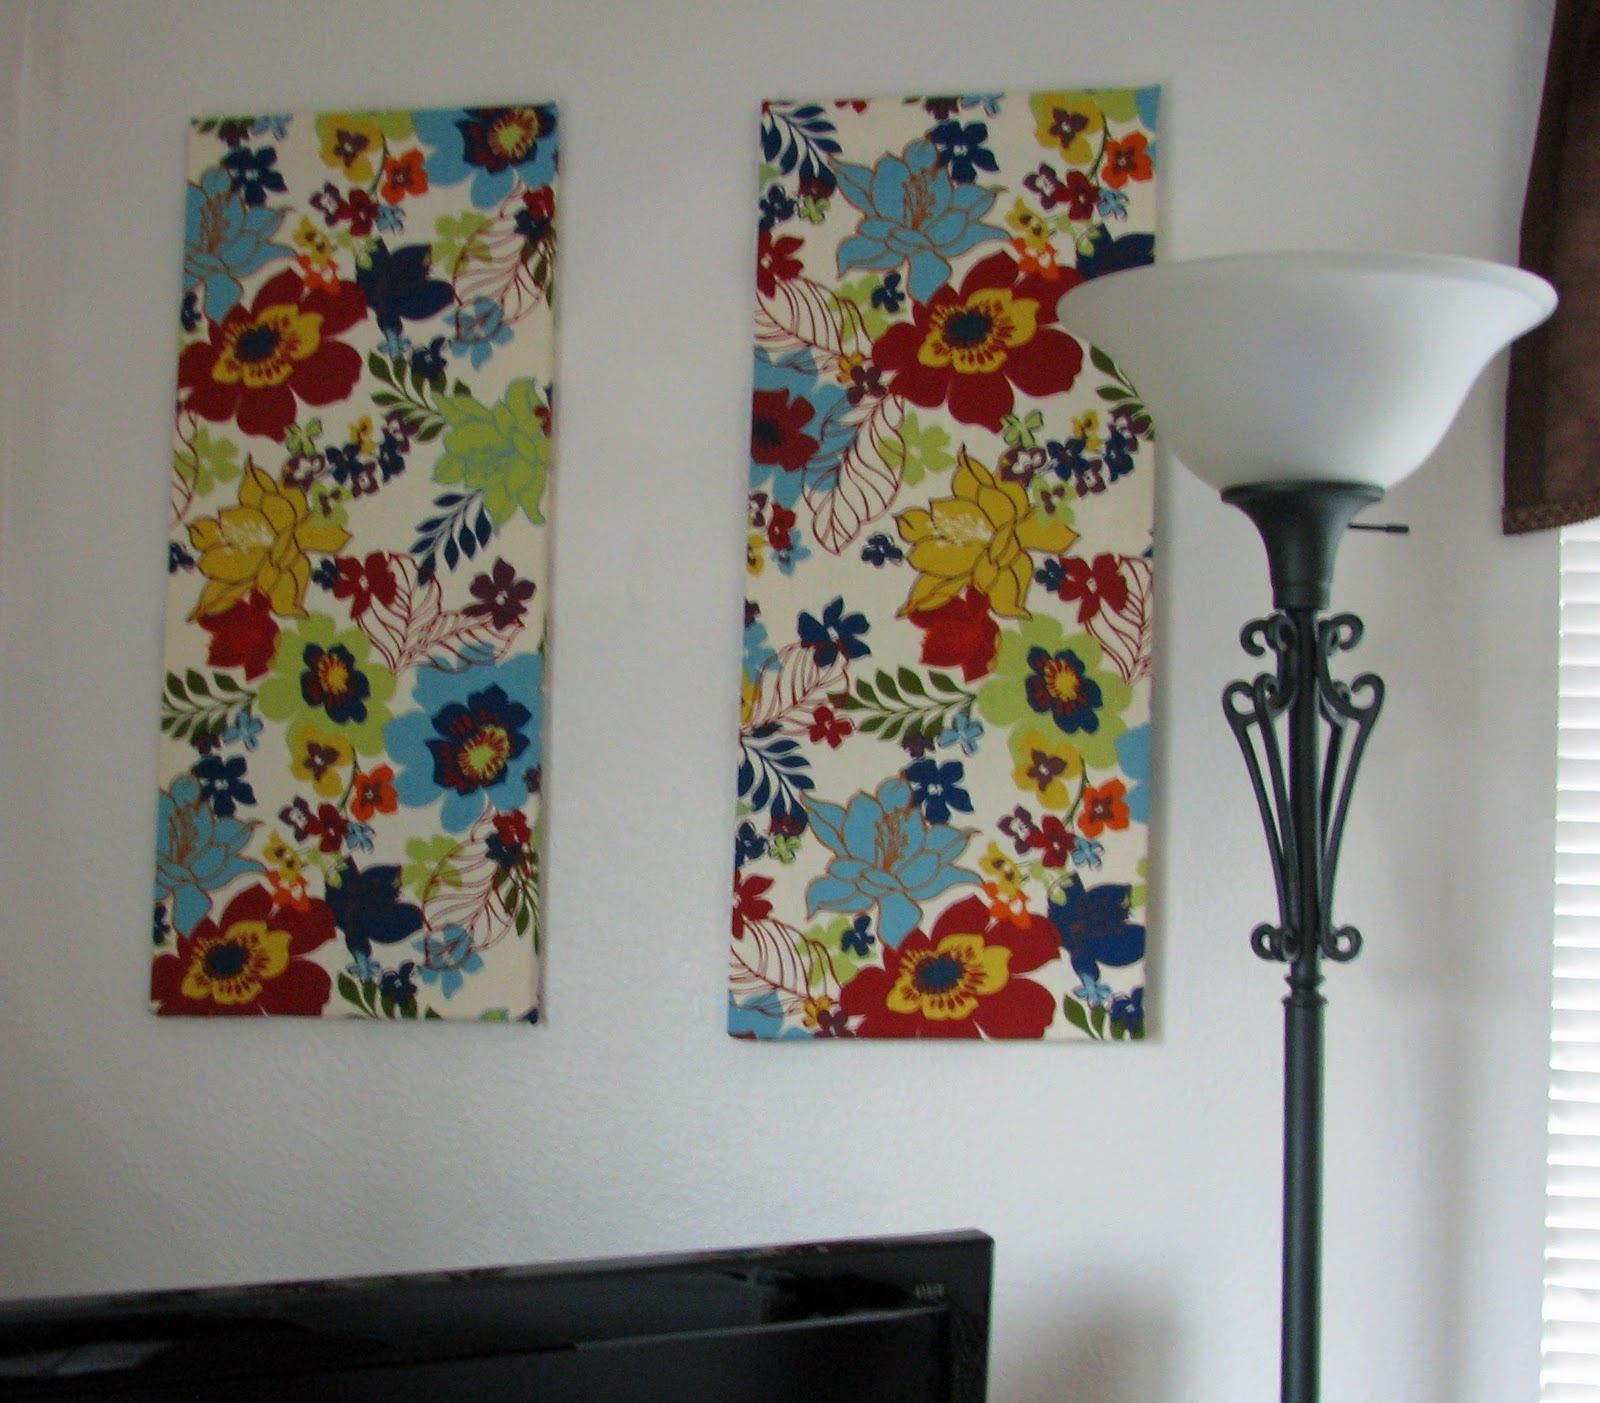 Famous The Closet Domestic: Hiding White Walls: Fabric Wall Art Regarding Fabric Stretcher Wall Art (View 8 of 15)